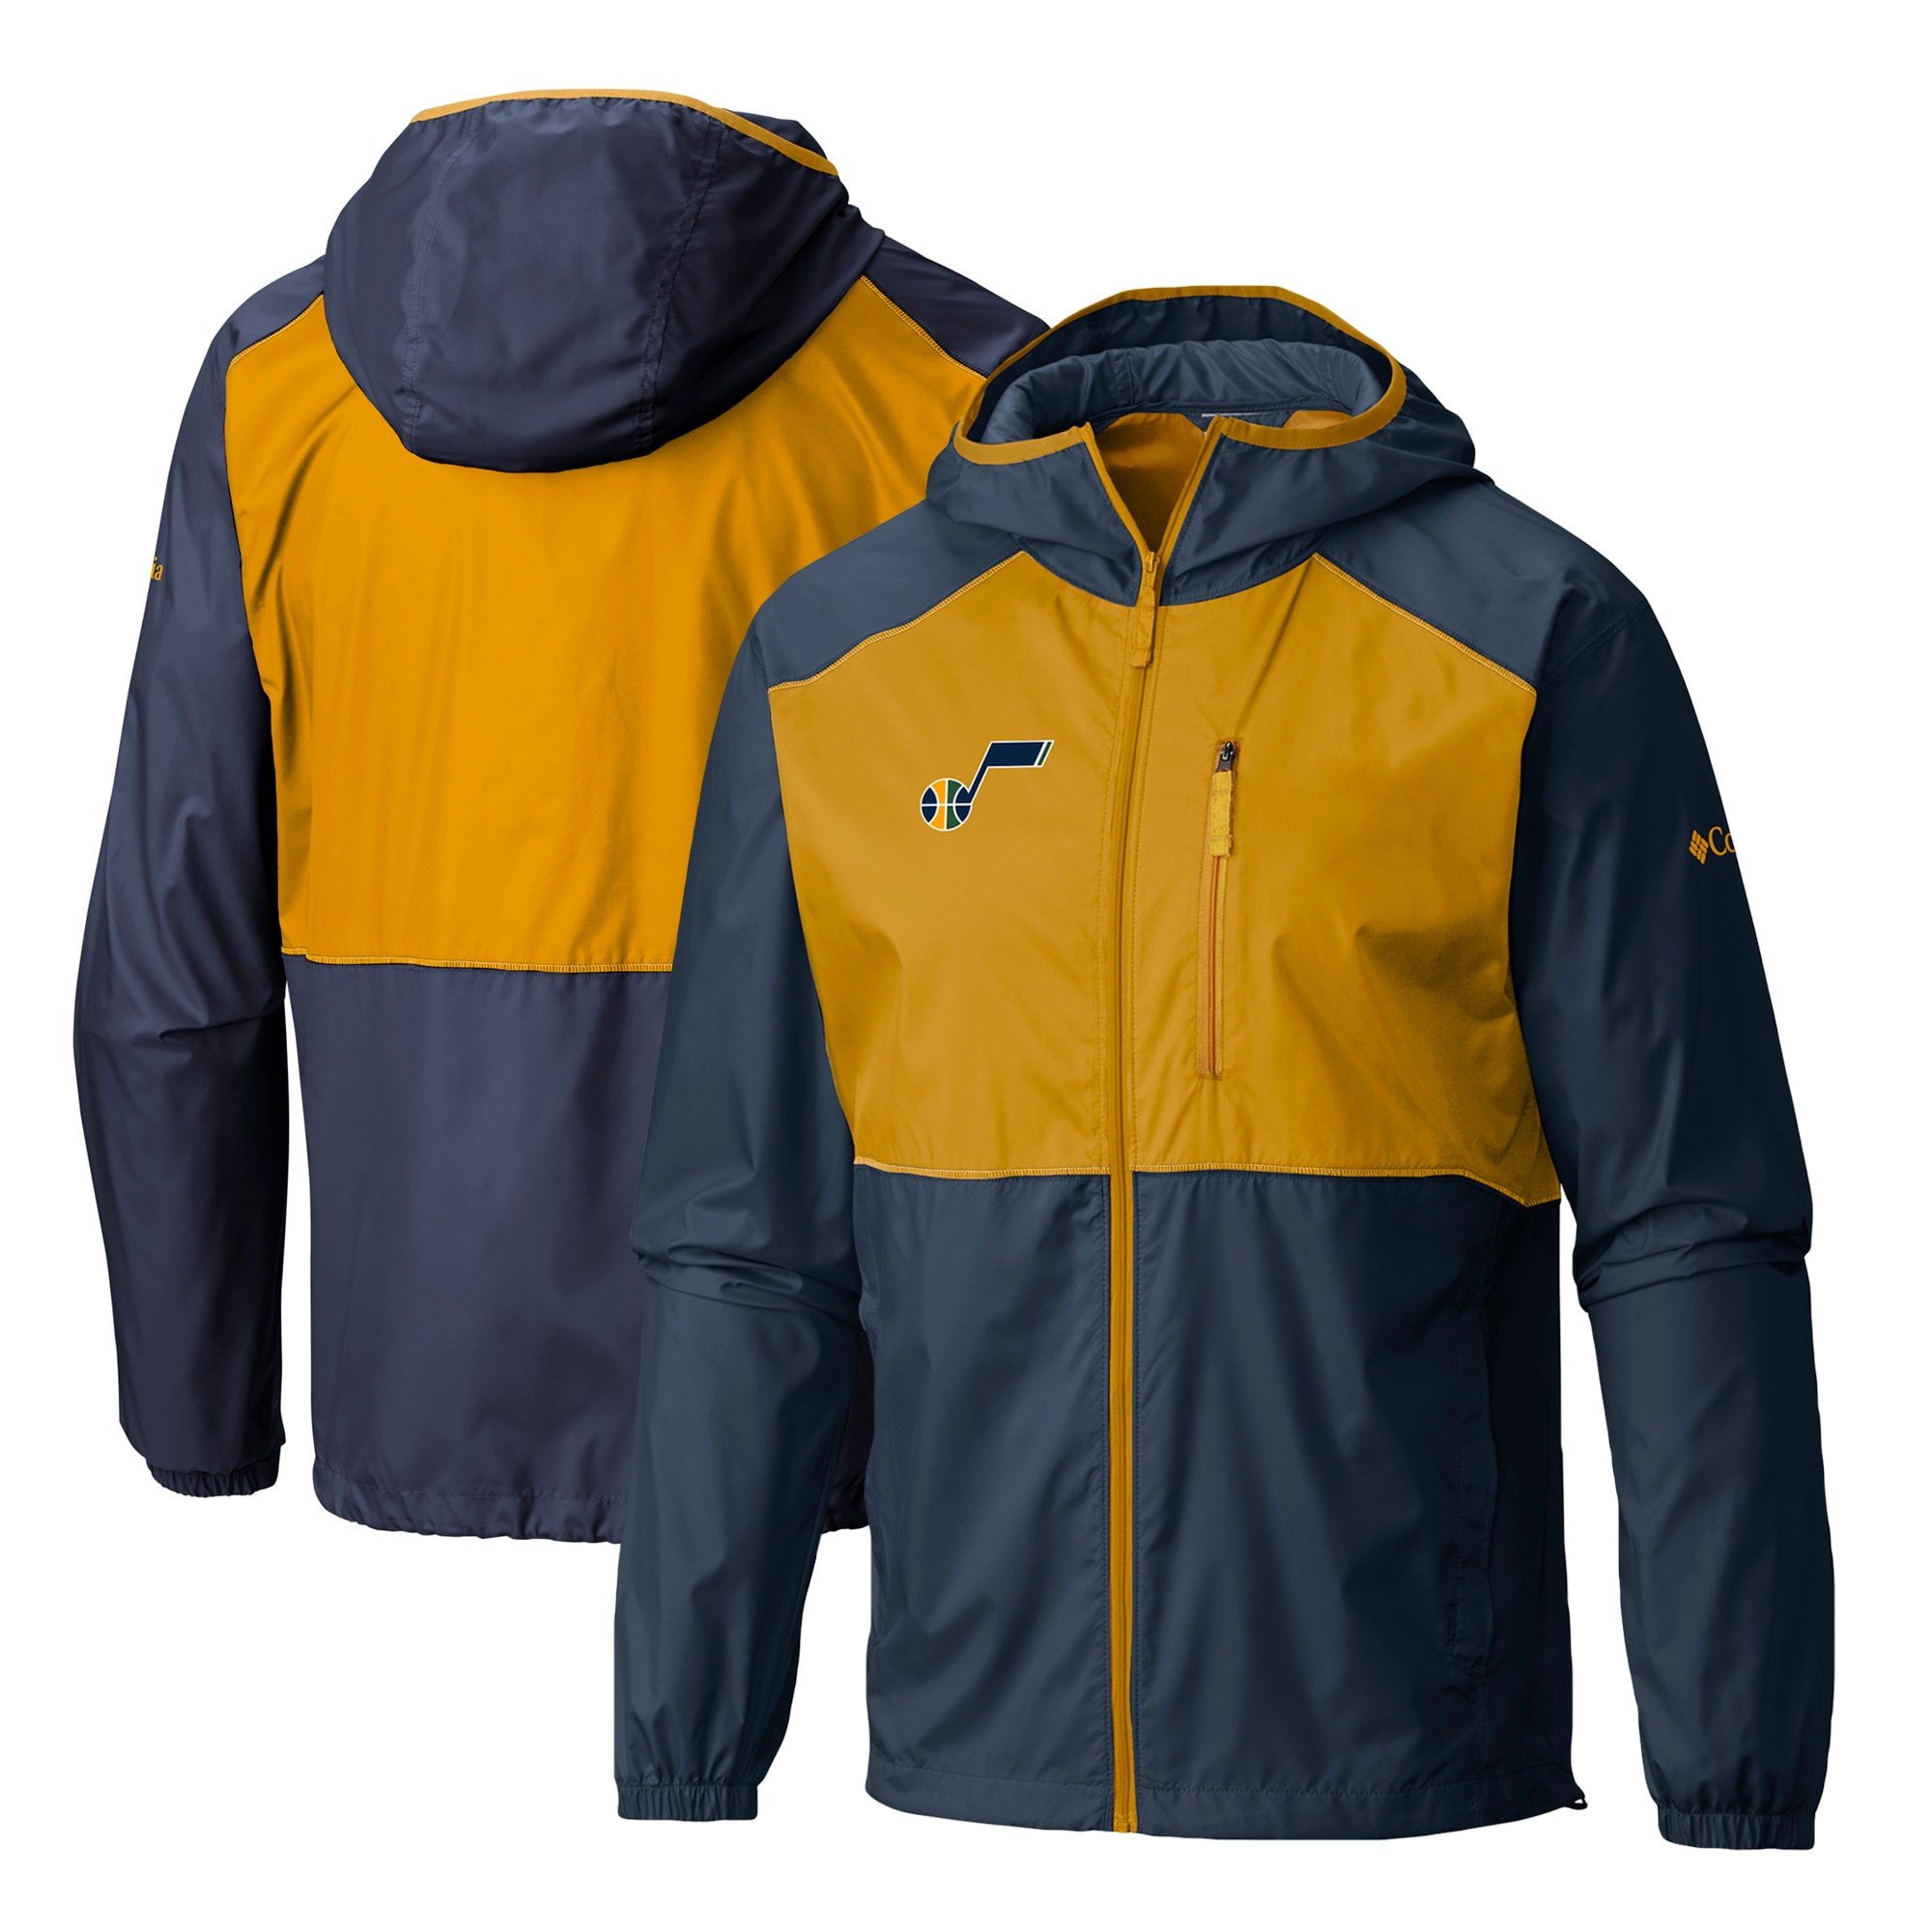 Utah Jazz Columbia Flash Forward Full-Zip Windbreaker Jacket - Navy